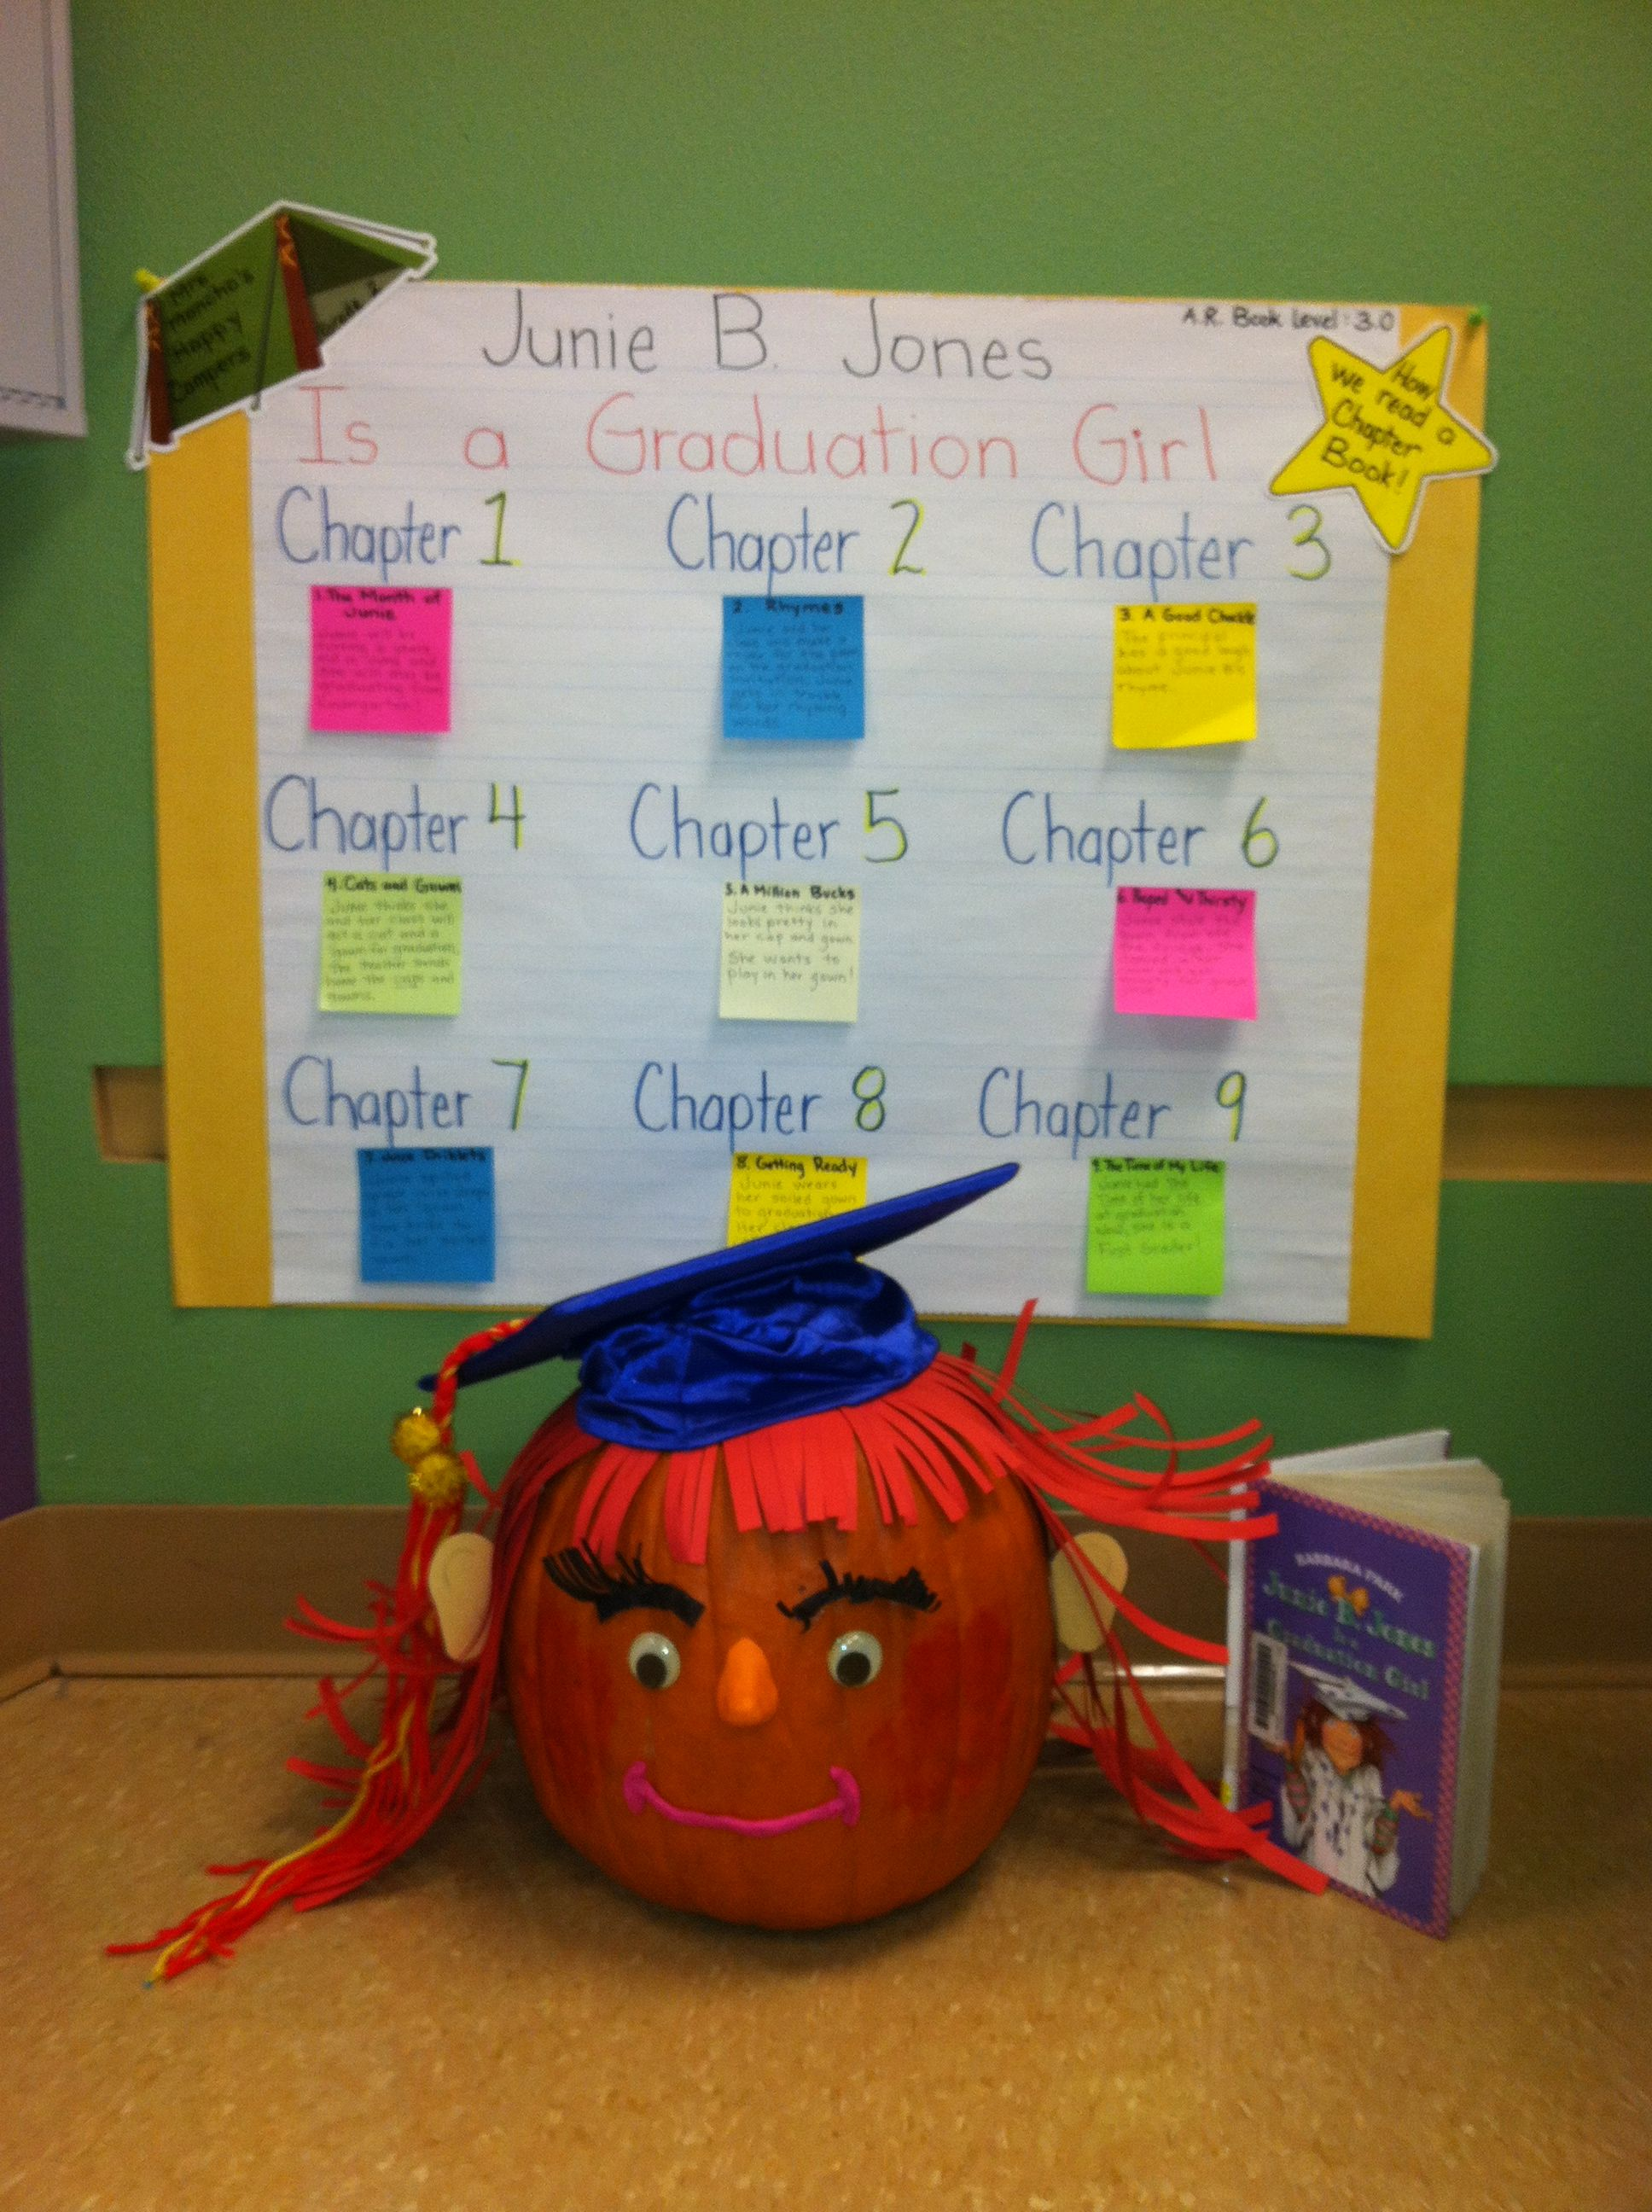 Our Junie B Jones Graduation Girl Book Pumpkin